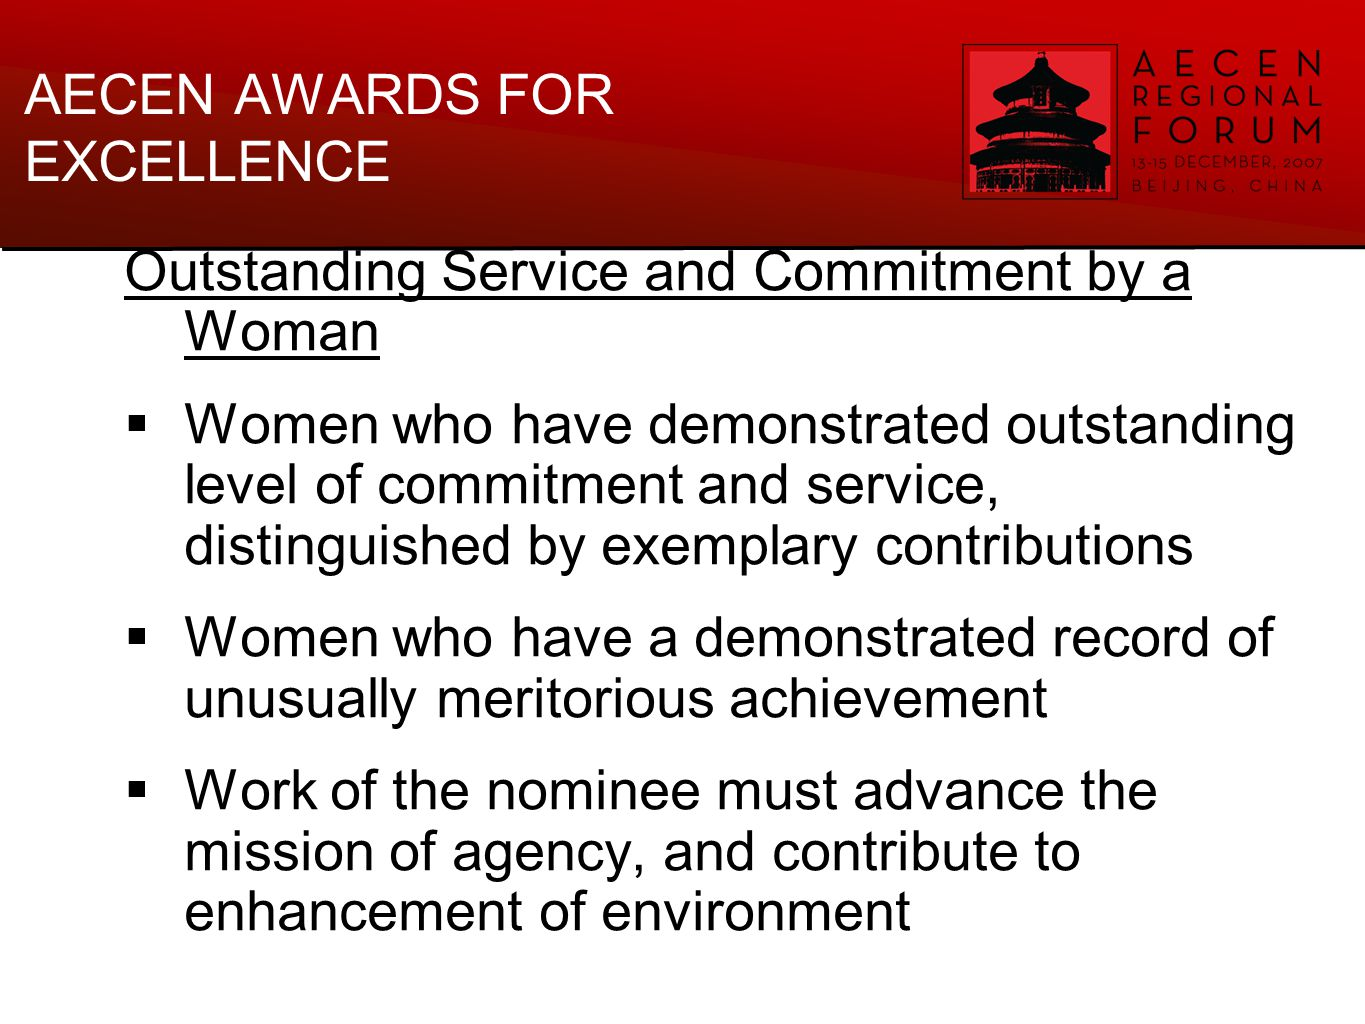 AECEN AWARDS FOR EXCELLENCE  Twinning Grants Program  Best Practices Inventory via AECEN website Outstanding Service and Commitment by a Woman  Women who have demonstrated outstanding level of commitment and service, distinguished by exemplary contributions  Women who have a demonstrated record of unusually meritorious achievement  Work of the nominee must advance the mission of agency, and contribute to enhancement of environment